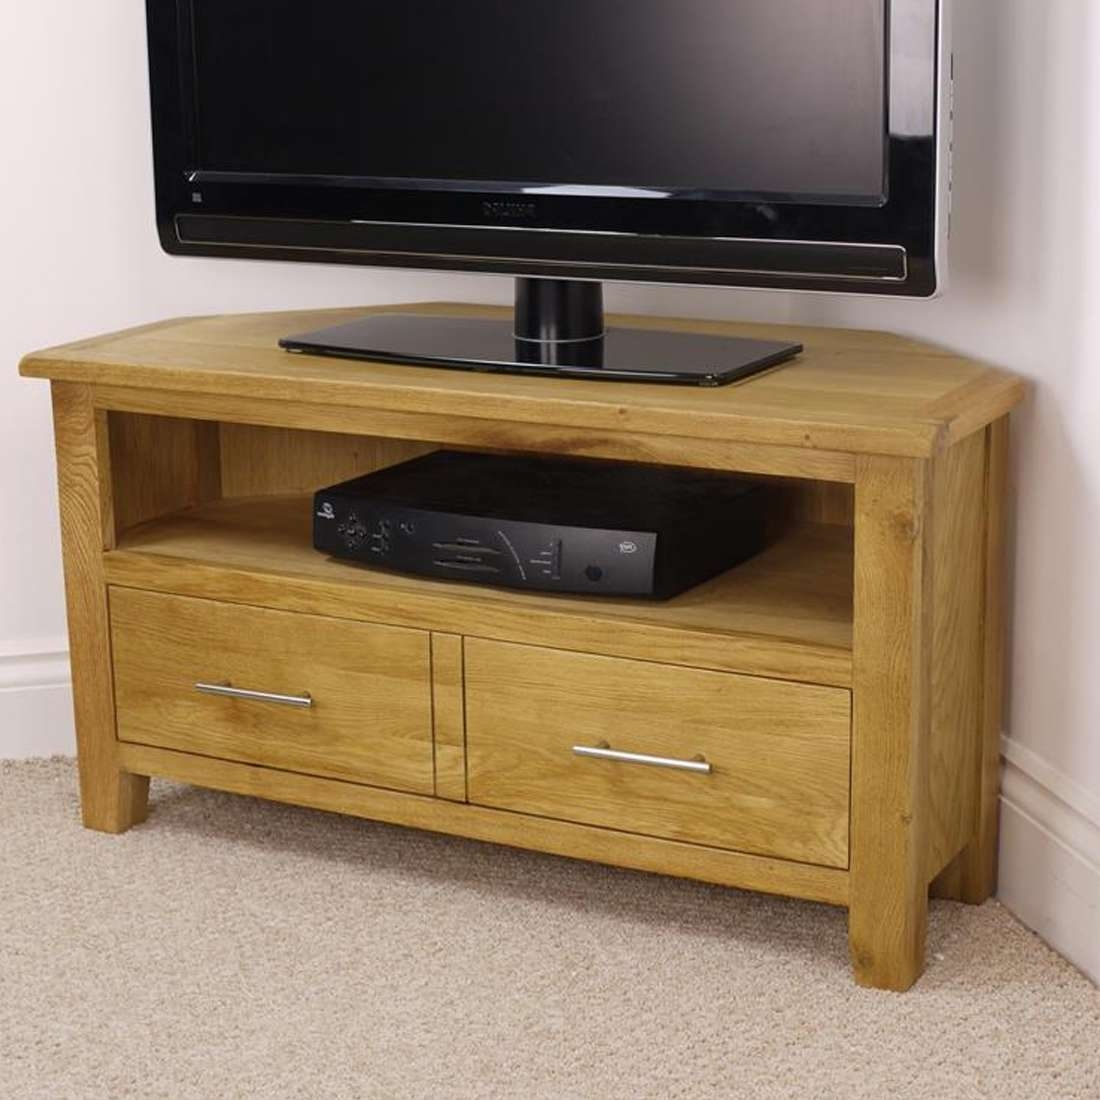 Nebraska Modern Oak Corner Tv Unit / Solid Wood Tv Stand / Oiled Intended For Corner Oak Tv Stands (View 7 of 15)